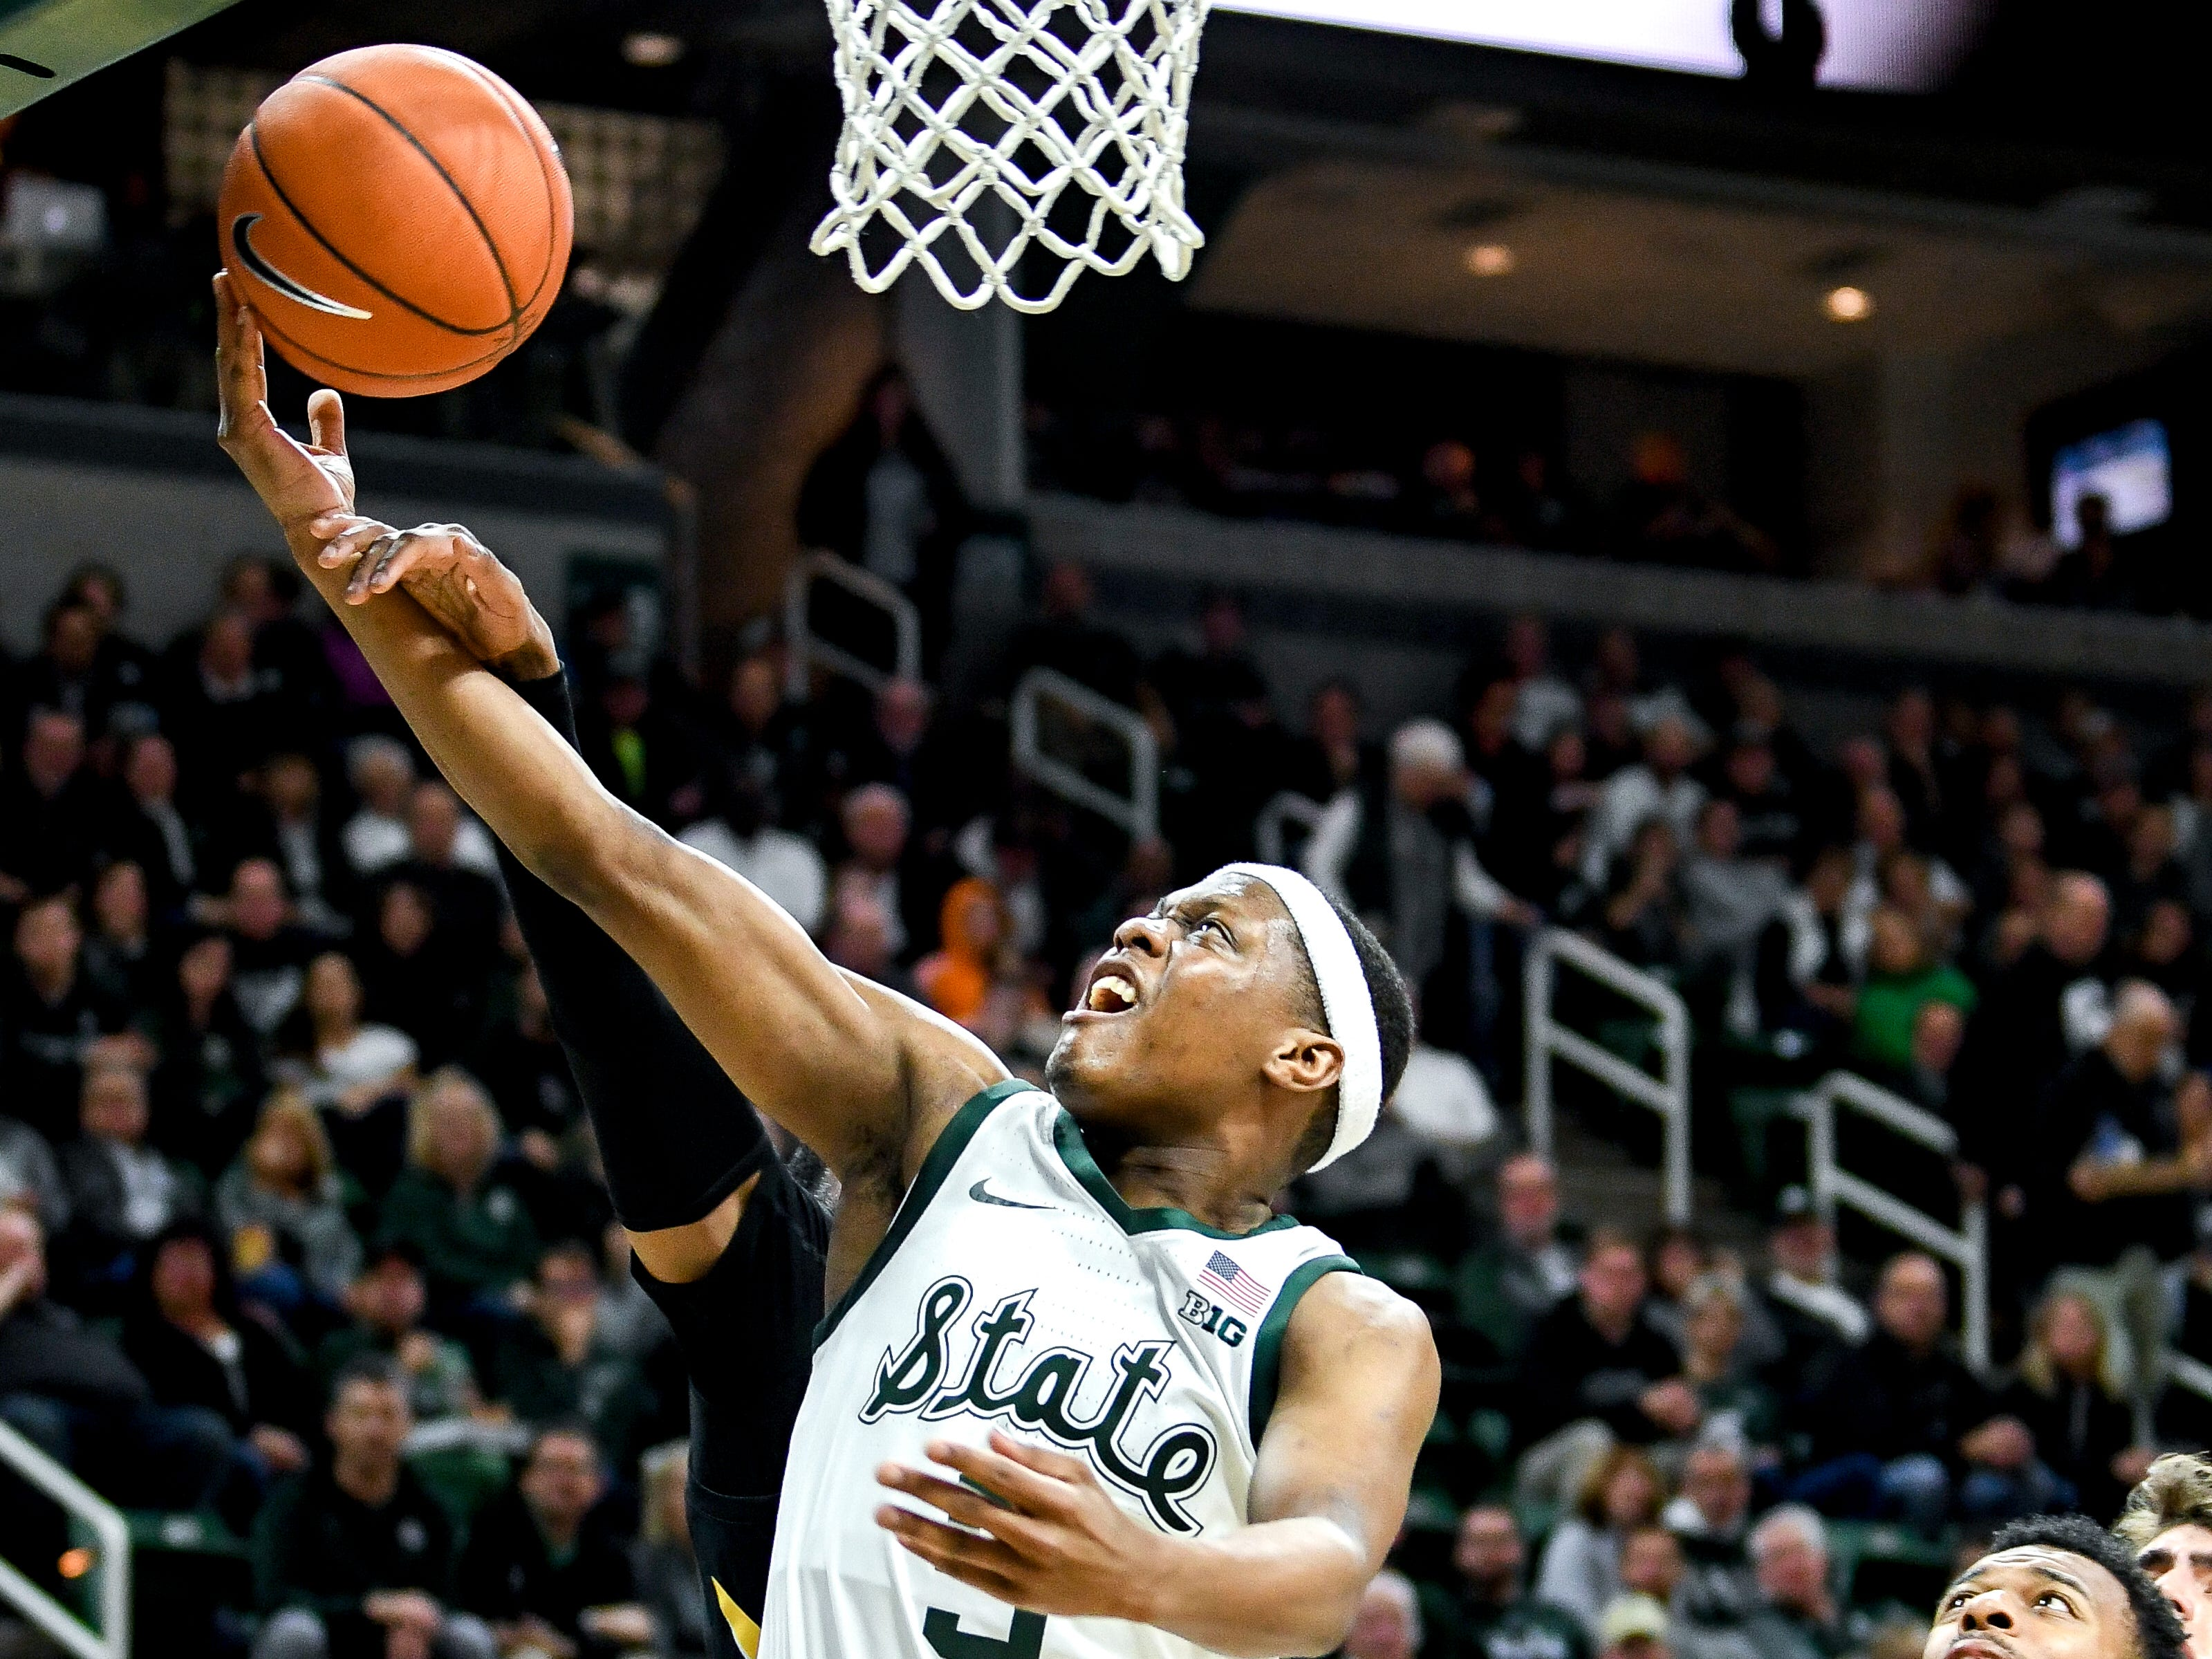 Michigan State's Cassius Winston shoots during the first half on Monday, Dec. 3, 2018, at the Breslin Center in East Lansing.